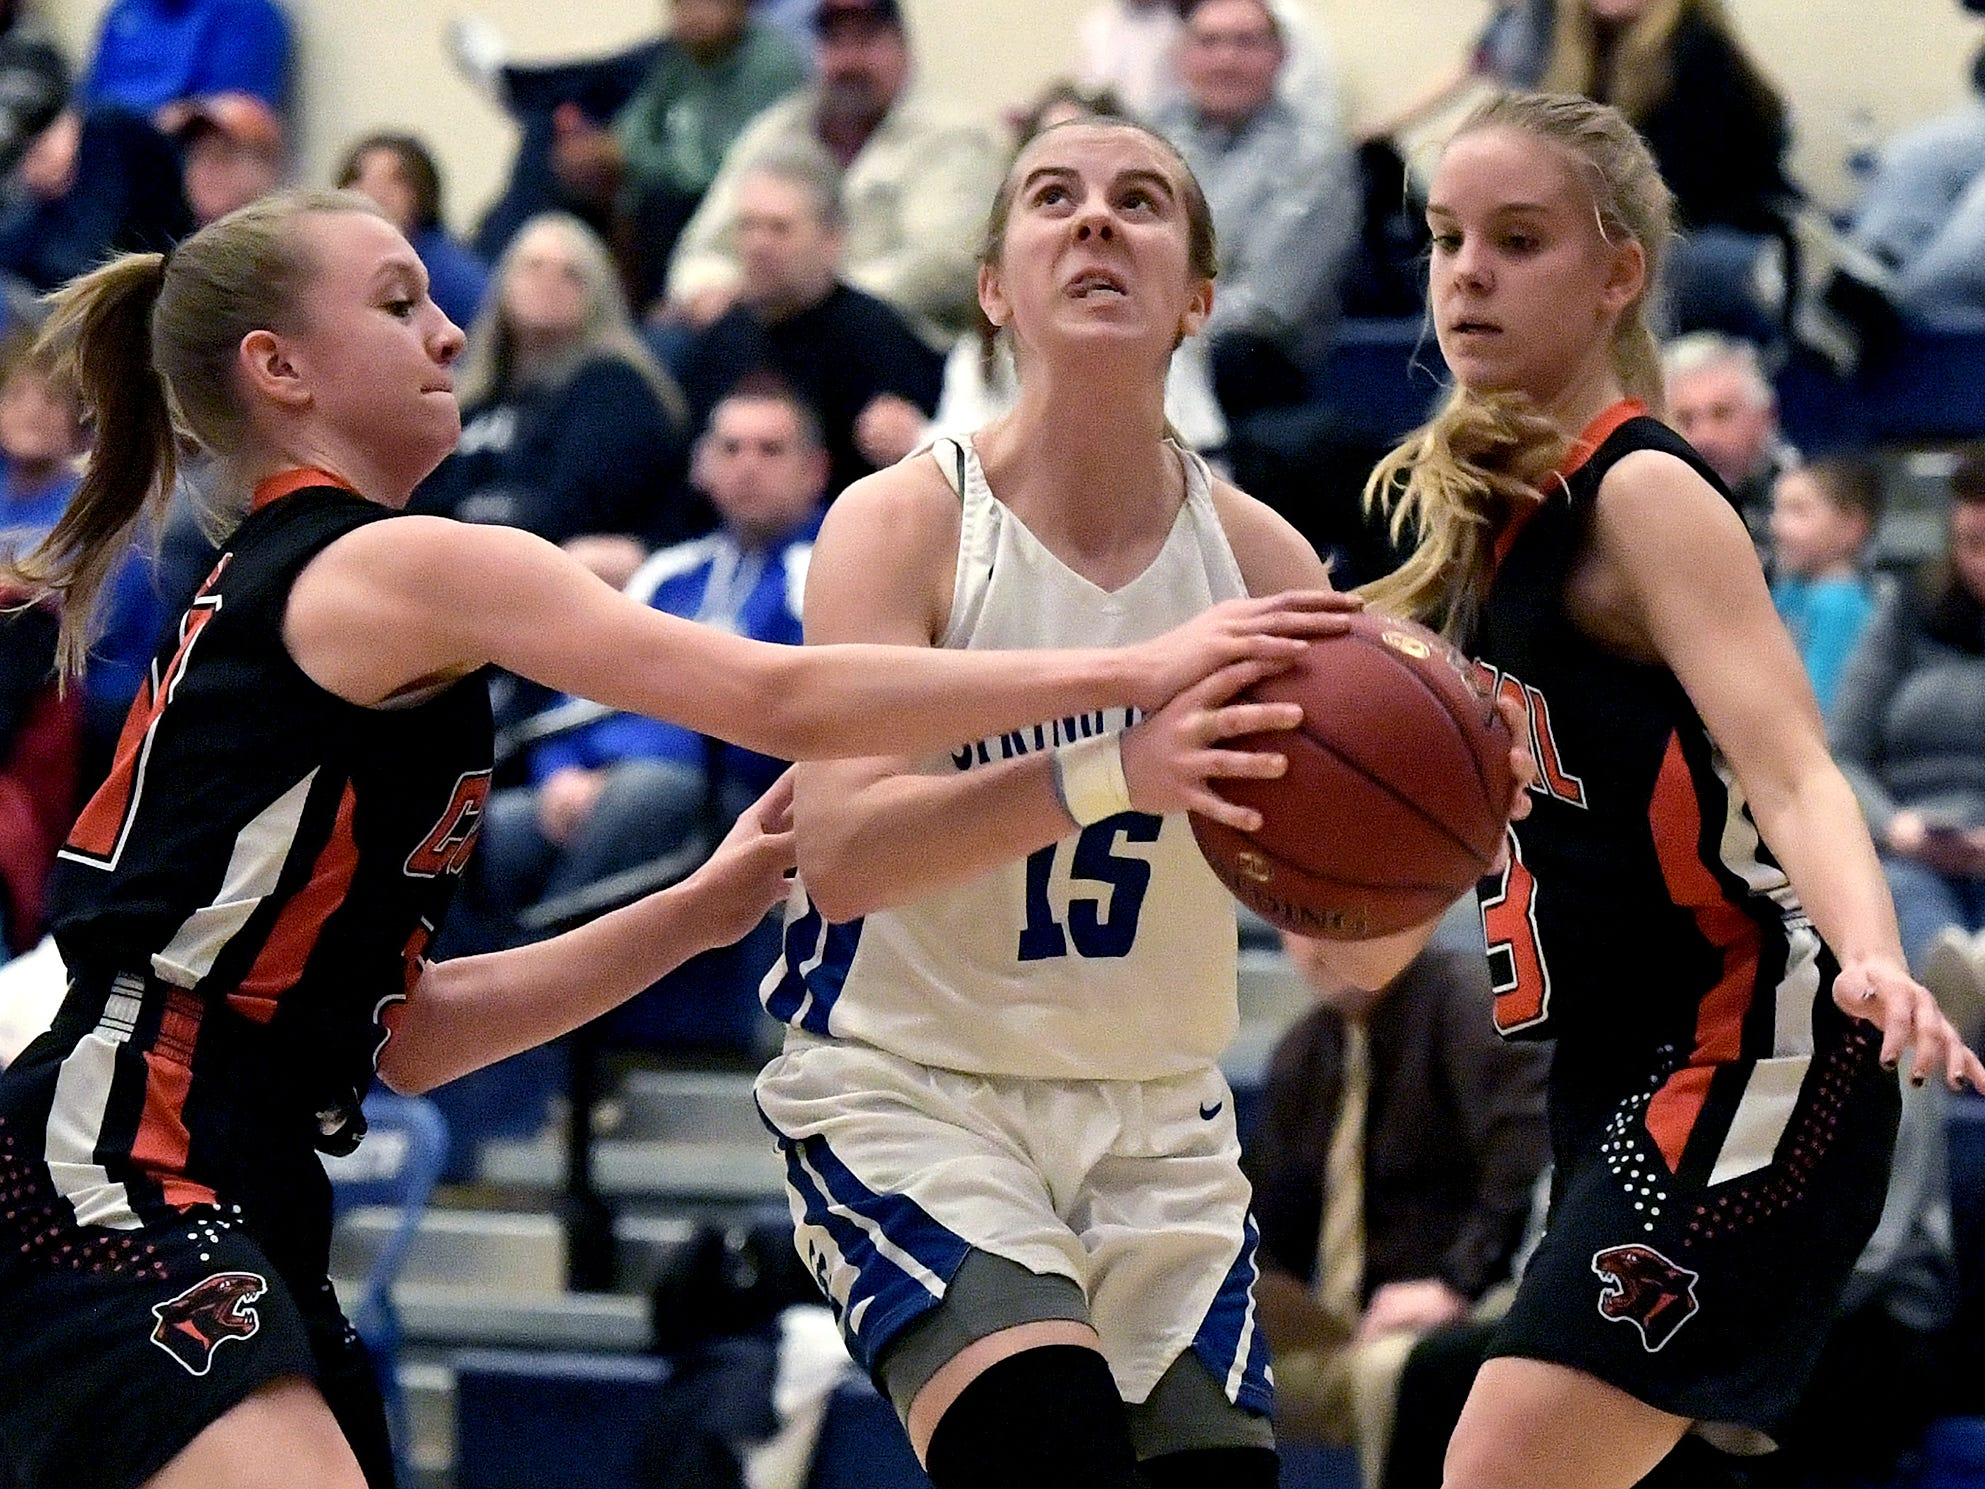 Spring Grove's Lexi Hoffman drives past Central York's Makaela Frey, left, and Grayce Rothrock during basketball action at Spring Grove Tuesday, Jan. 8, 2019. Bill Kalina photo